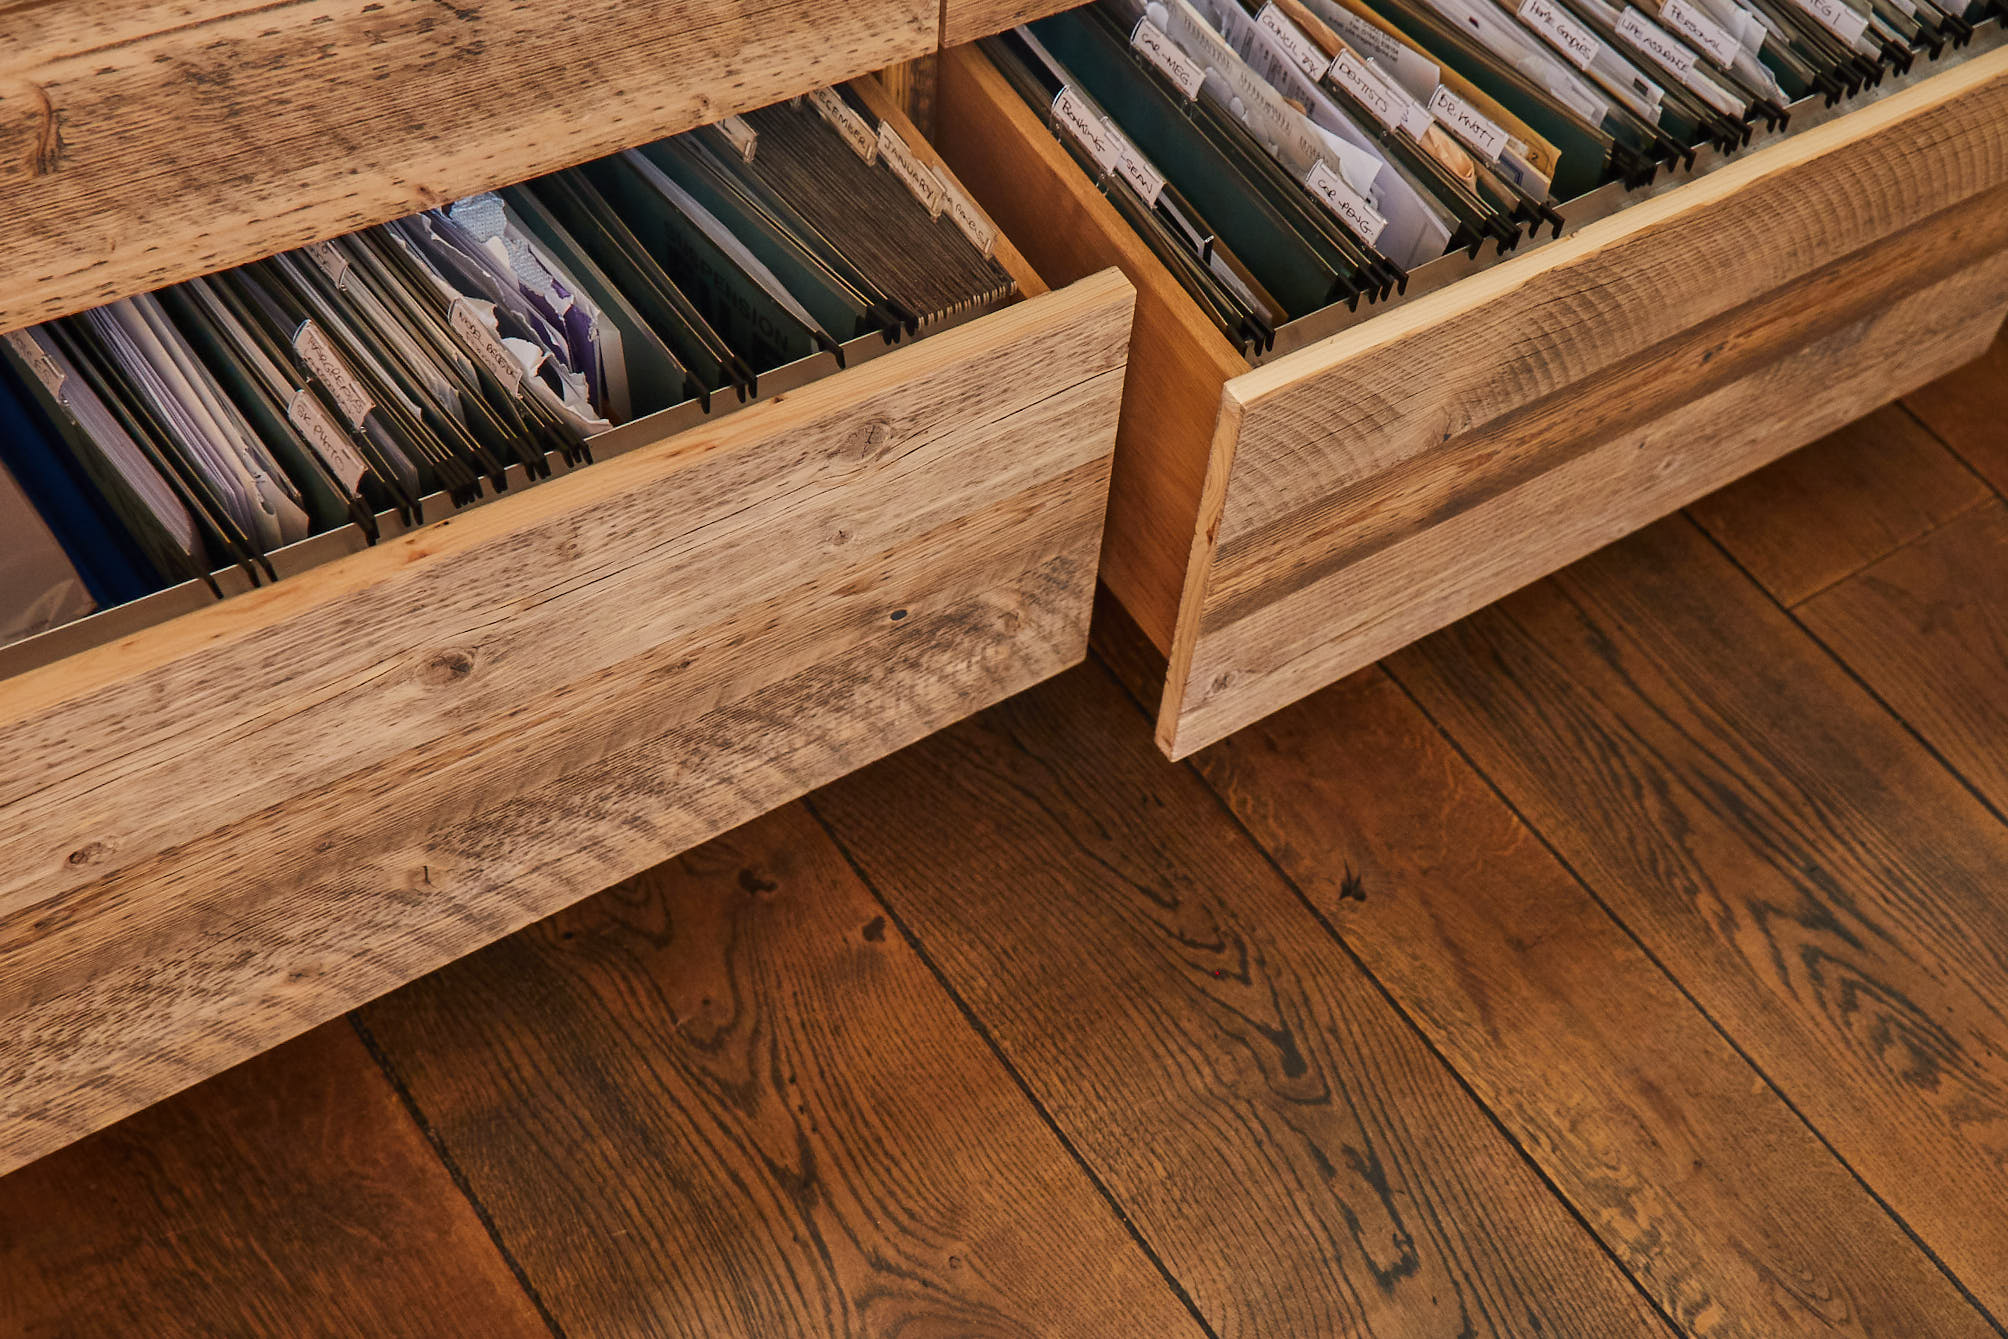 Rustic pine filing cabinets open